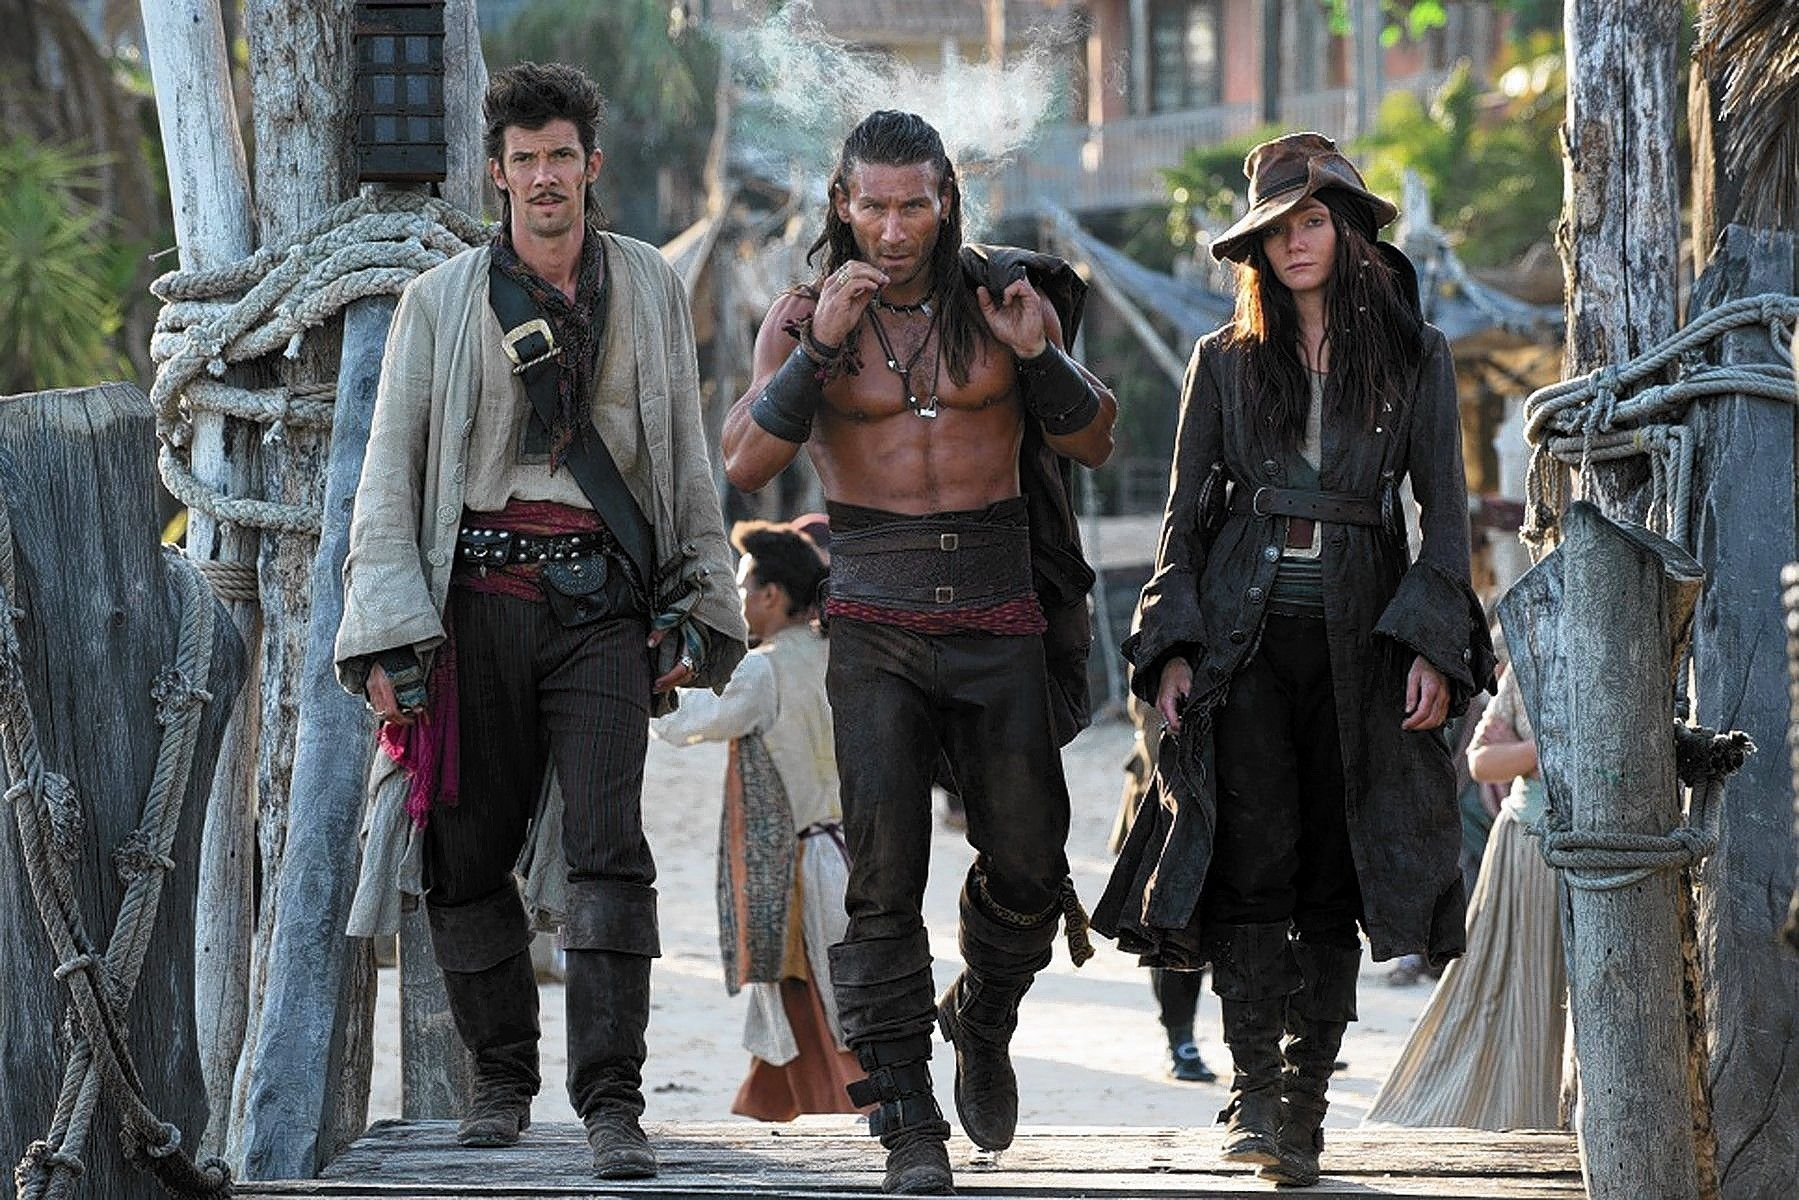 #Smiley360 #BlackSails #PiratesWanted ~Black Sails dangerous trio